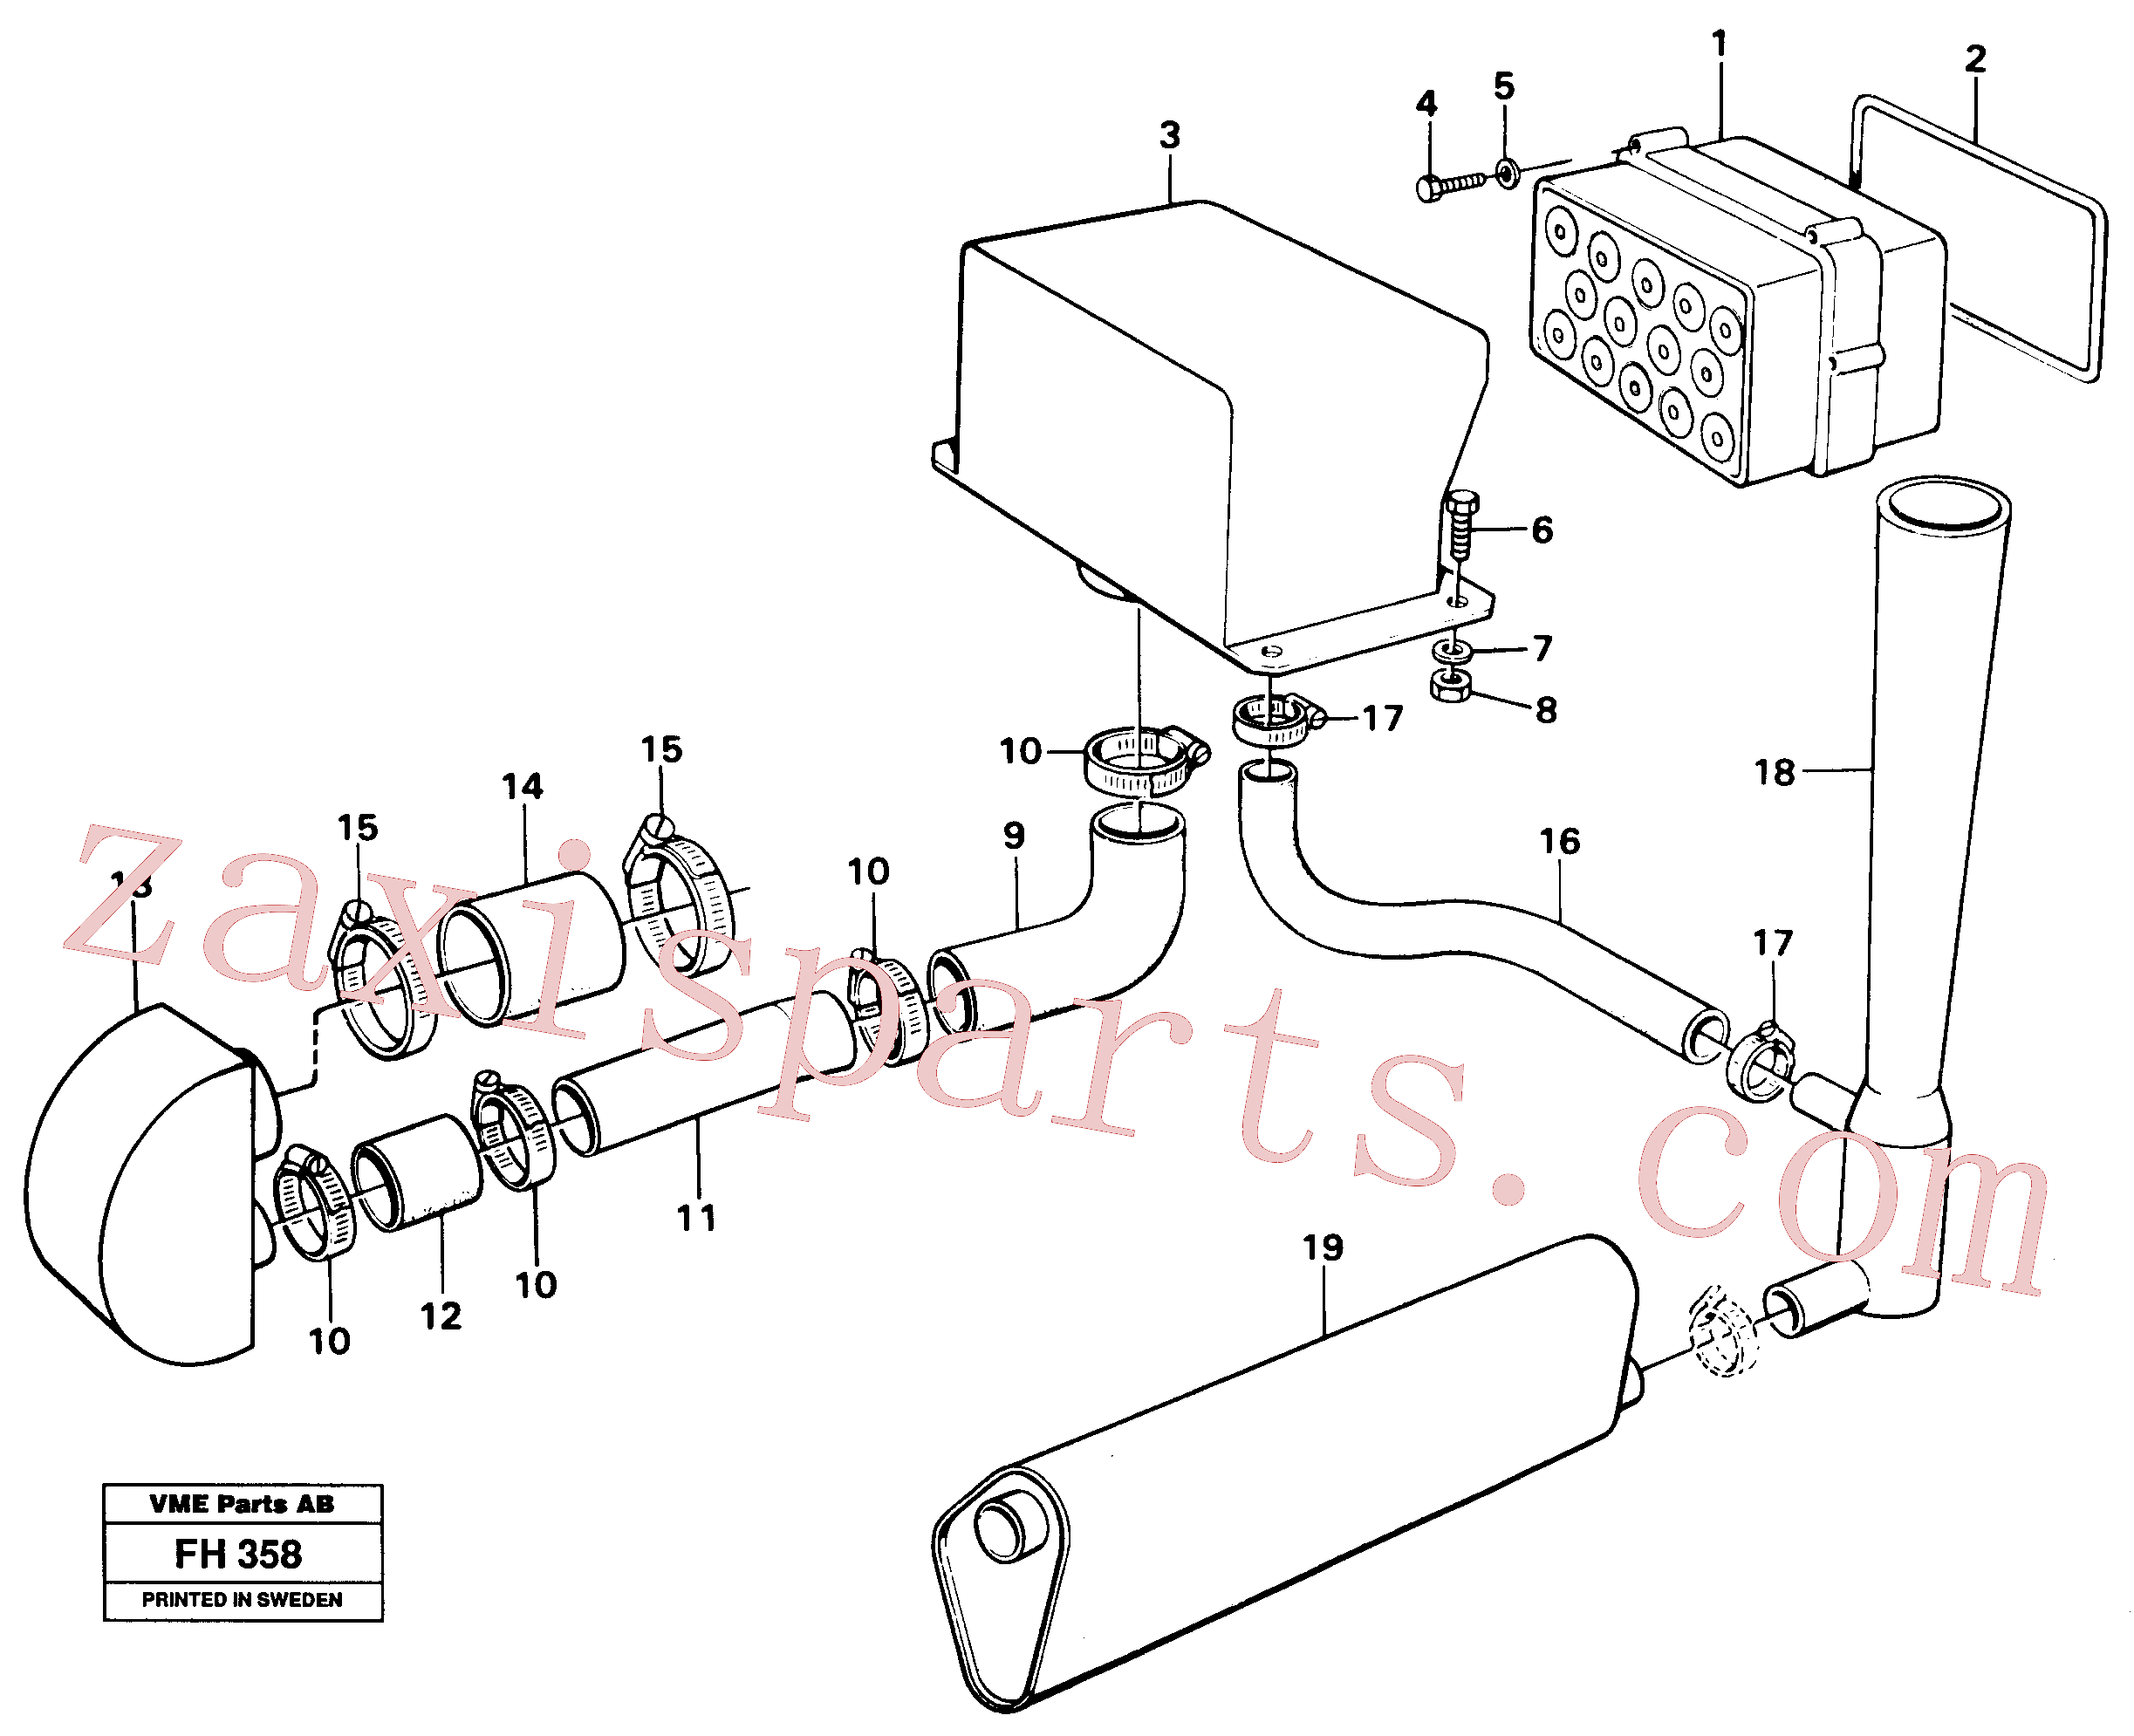 VOE14248986 for Volvo Precyclone with ejector(FH358 assembly)